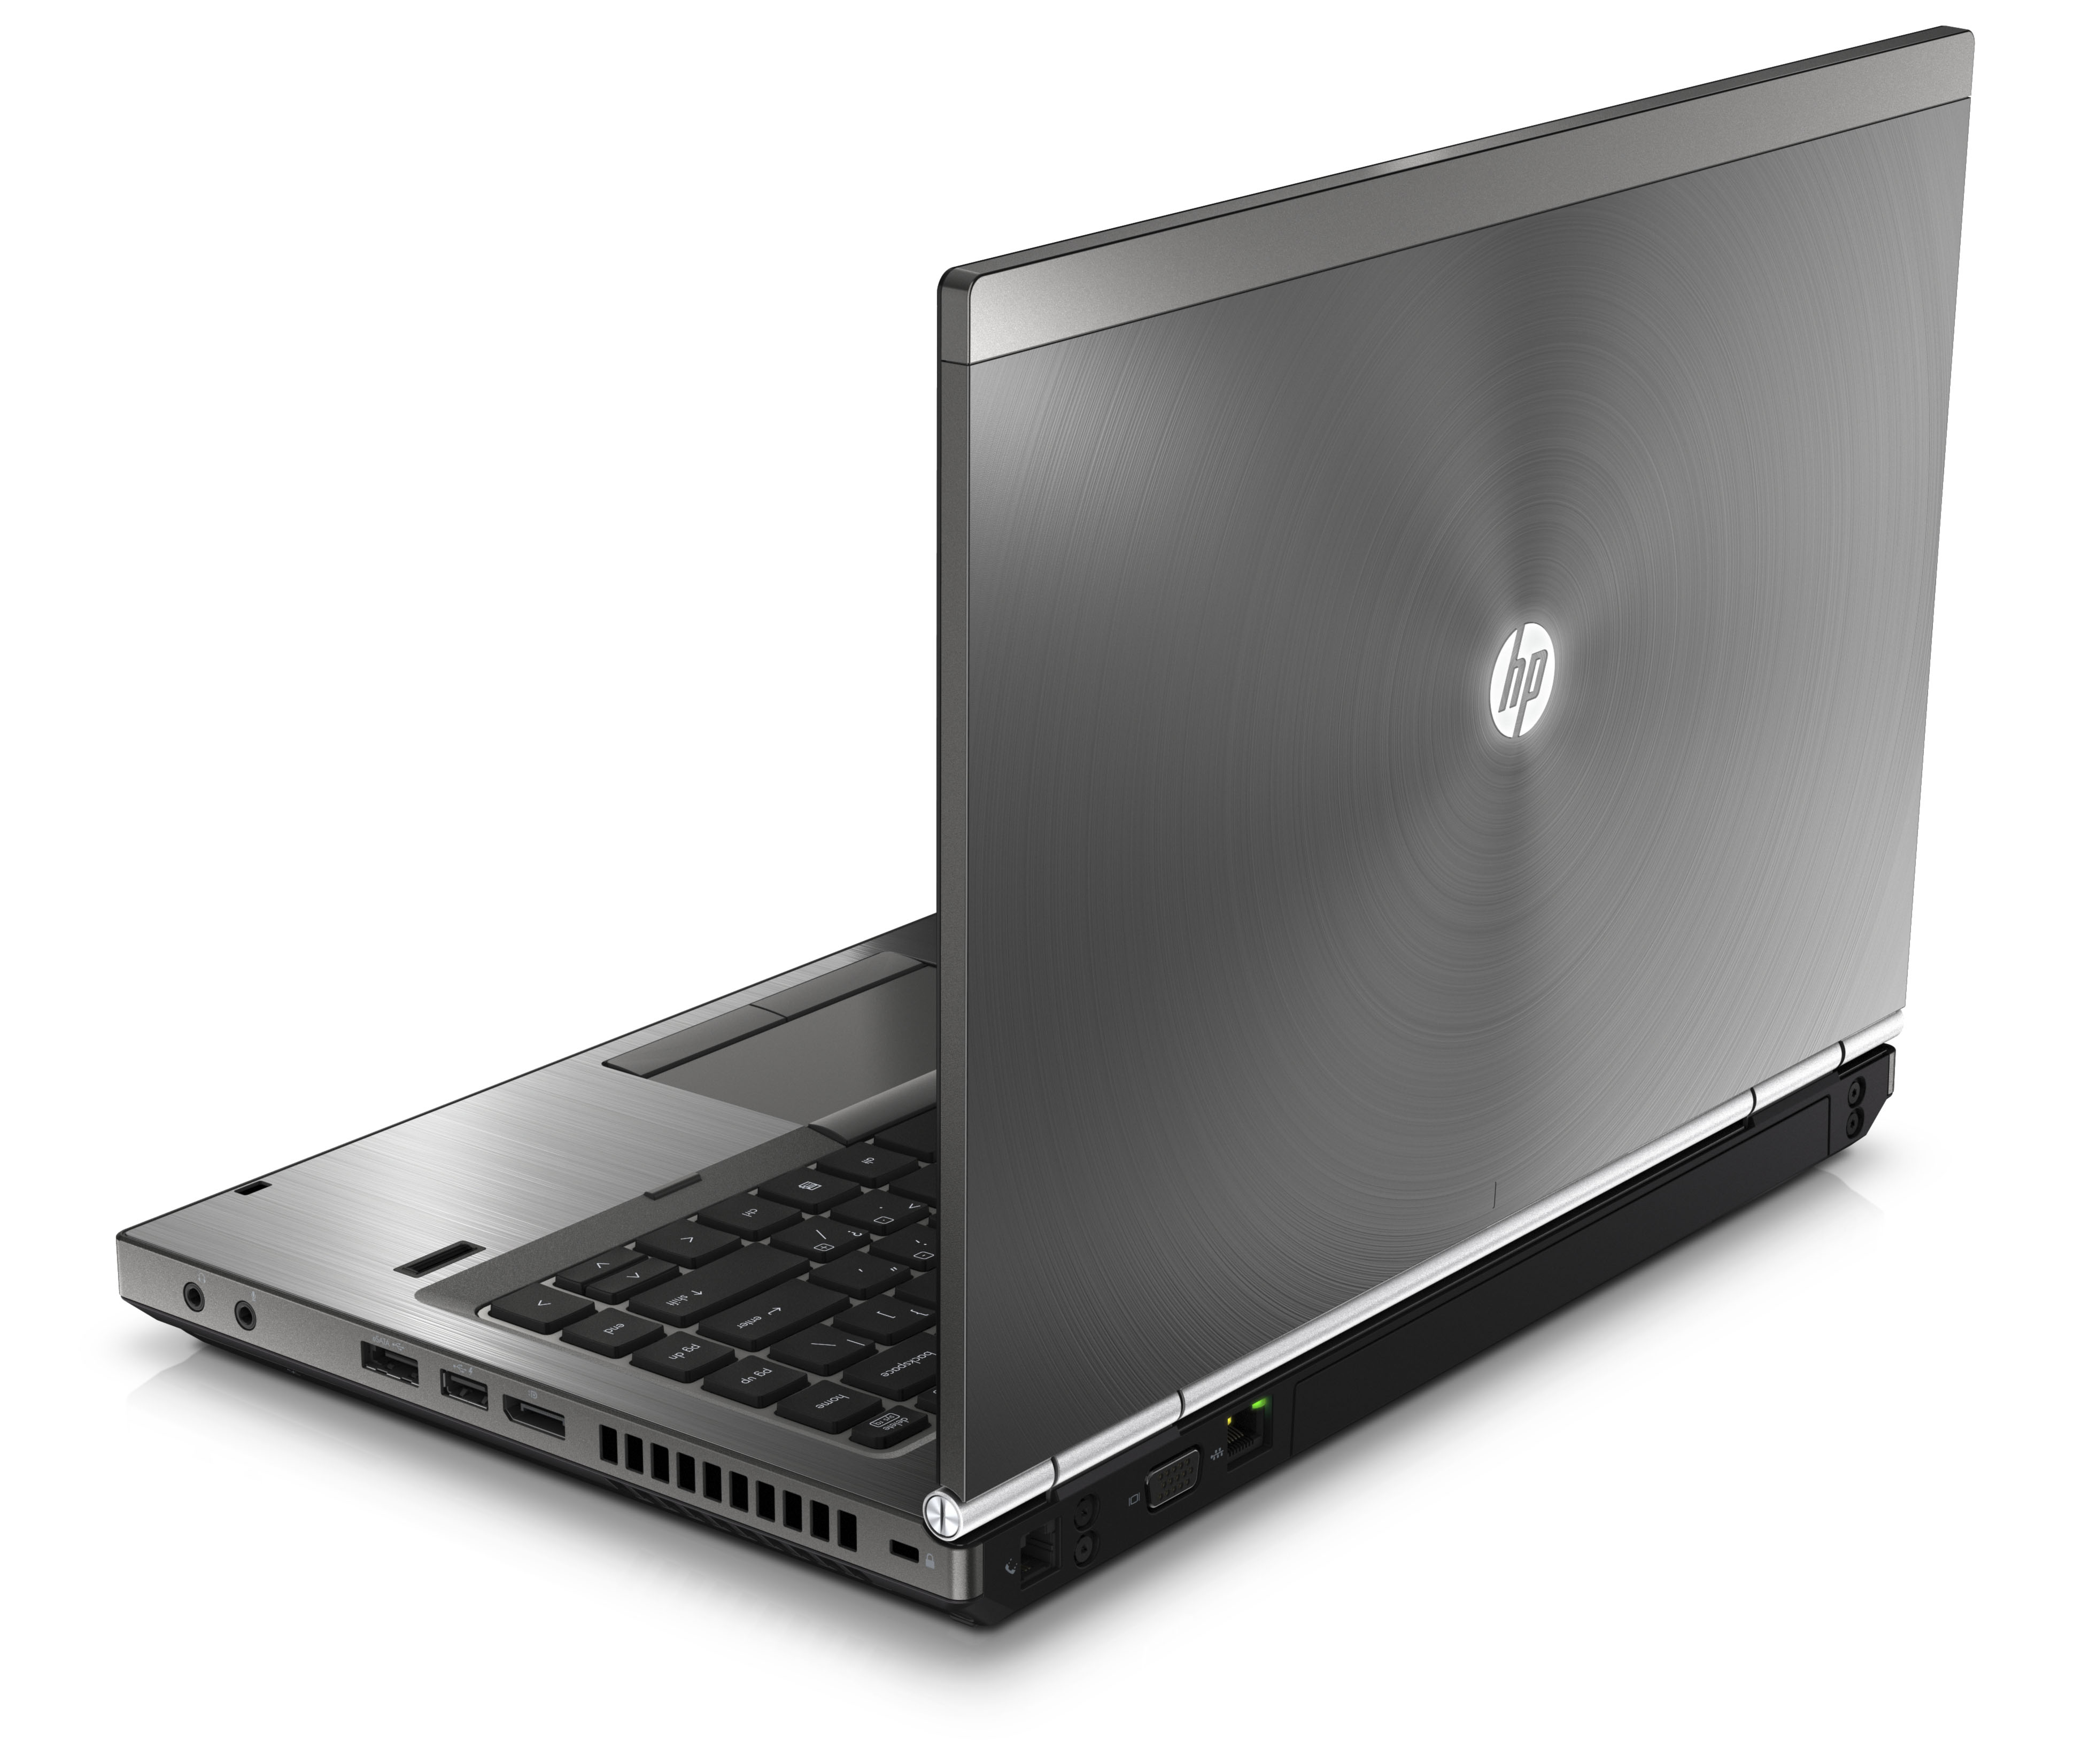 EliteBook 8460w Design